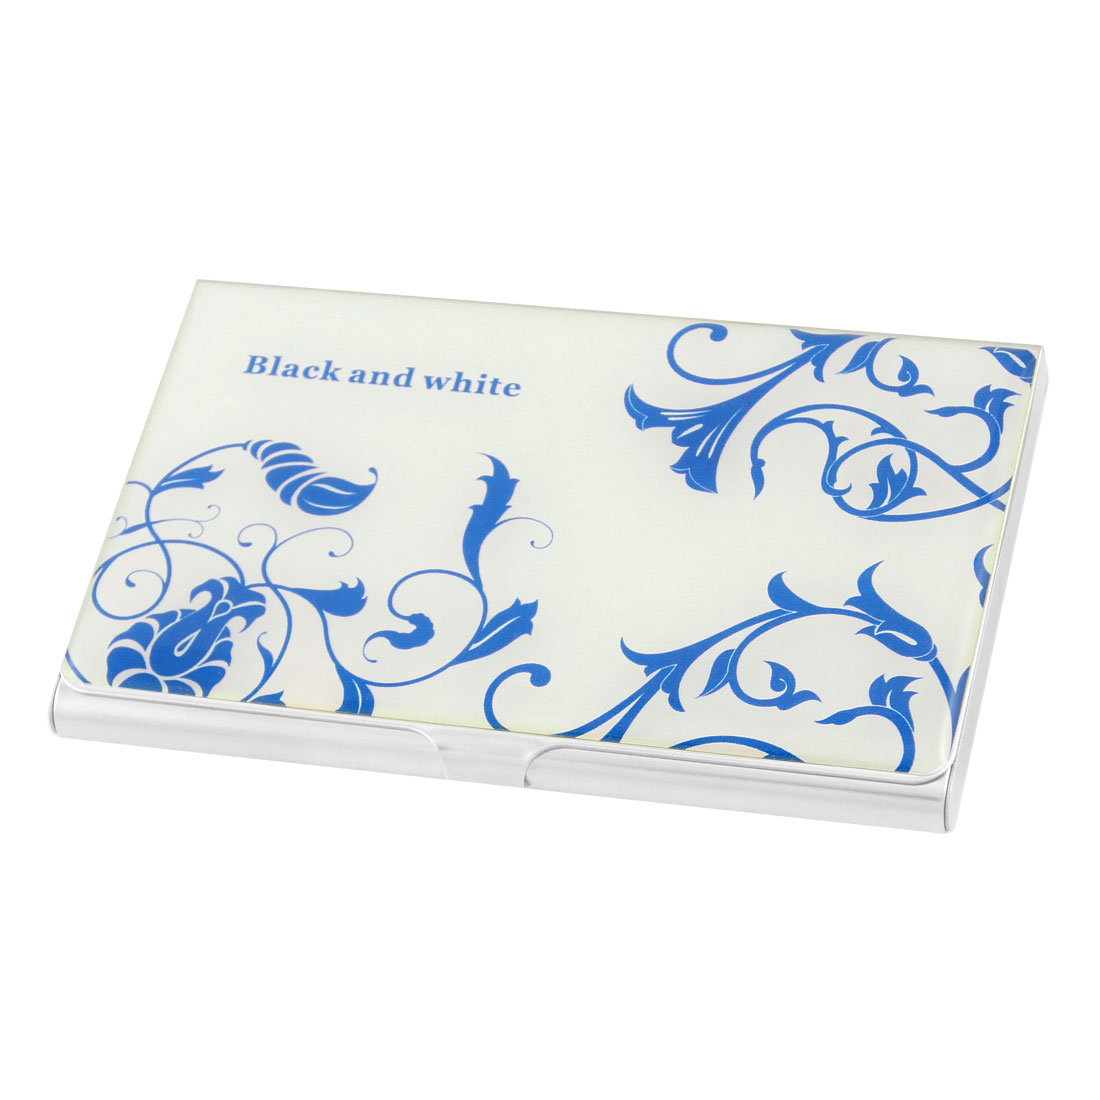 White Background Blue Floral Pattern Stainless Steel Credit Name Card Holder Box